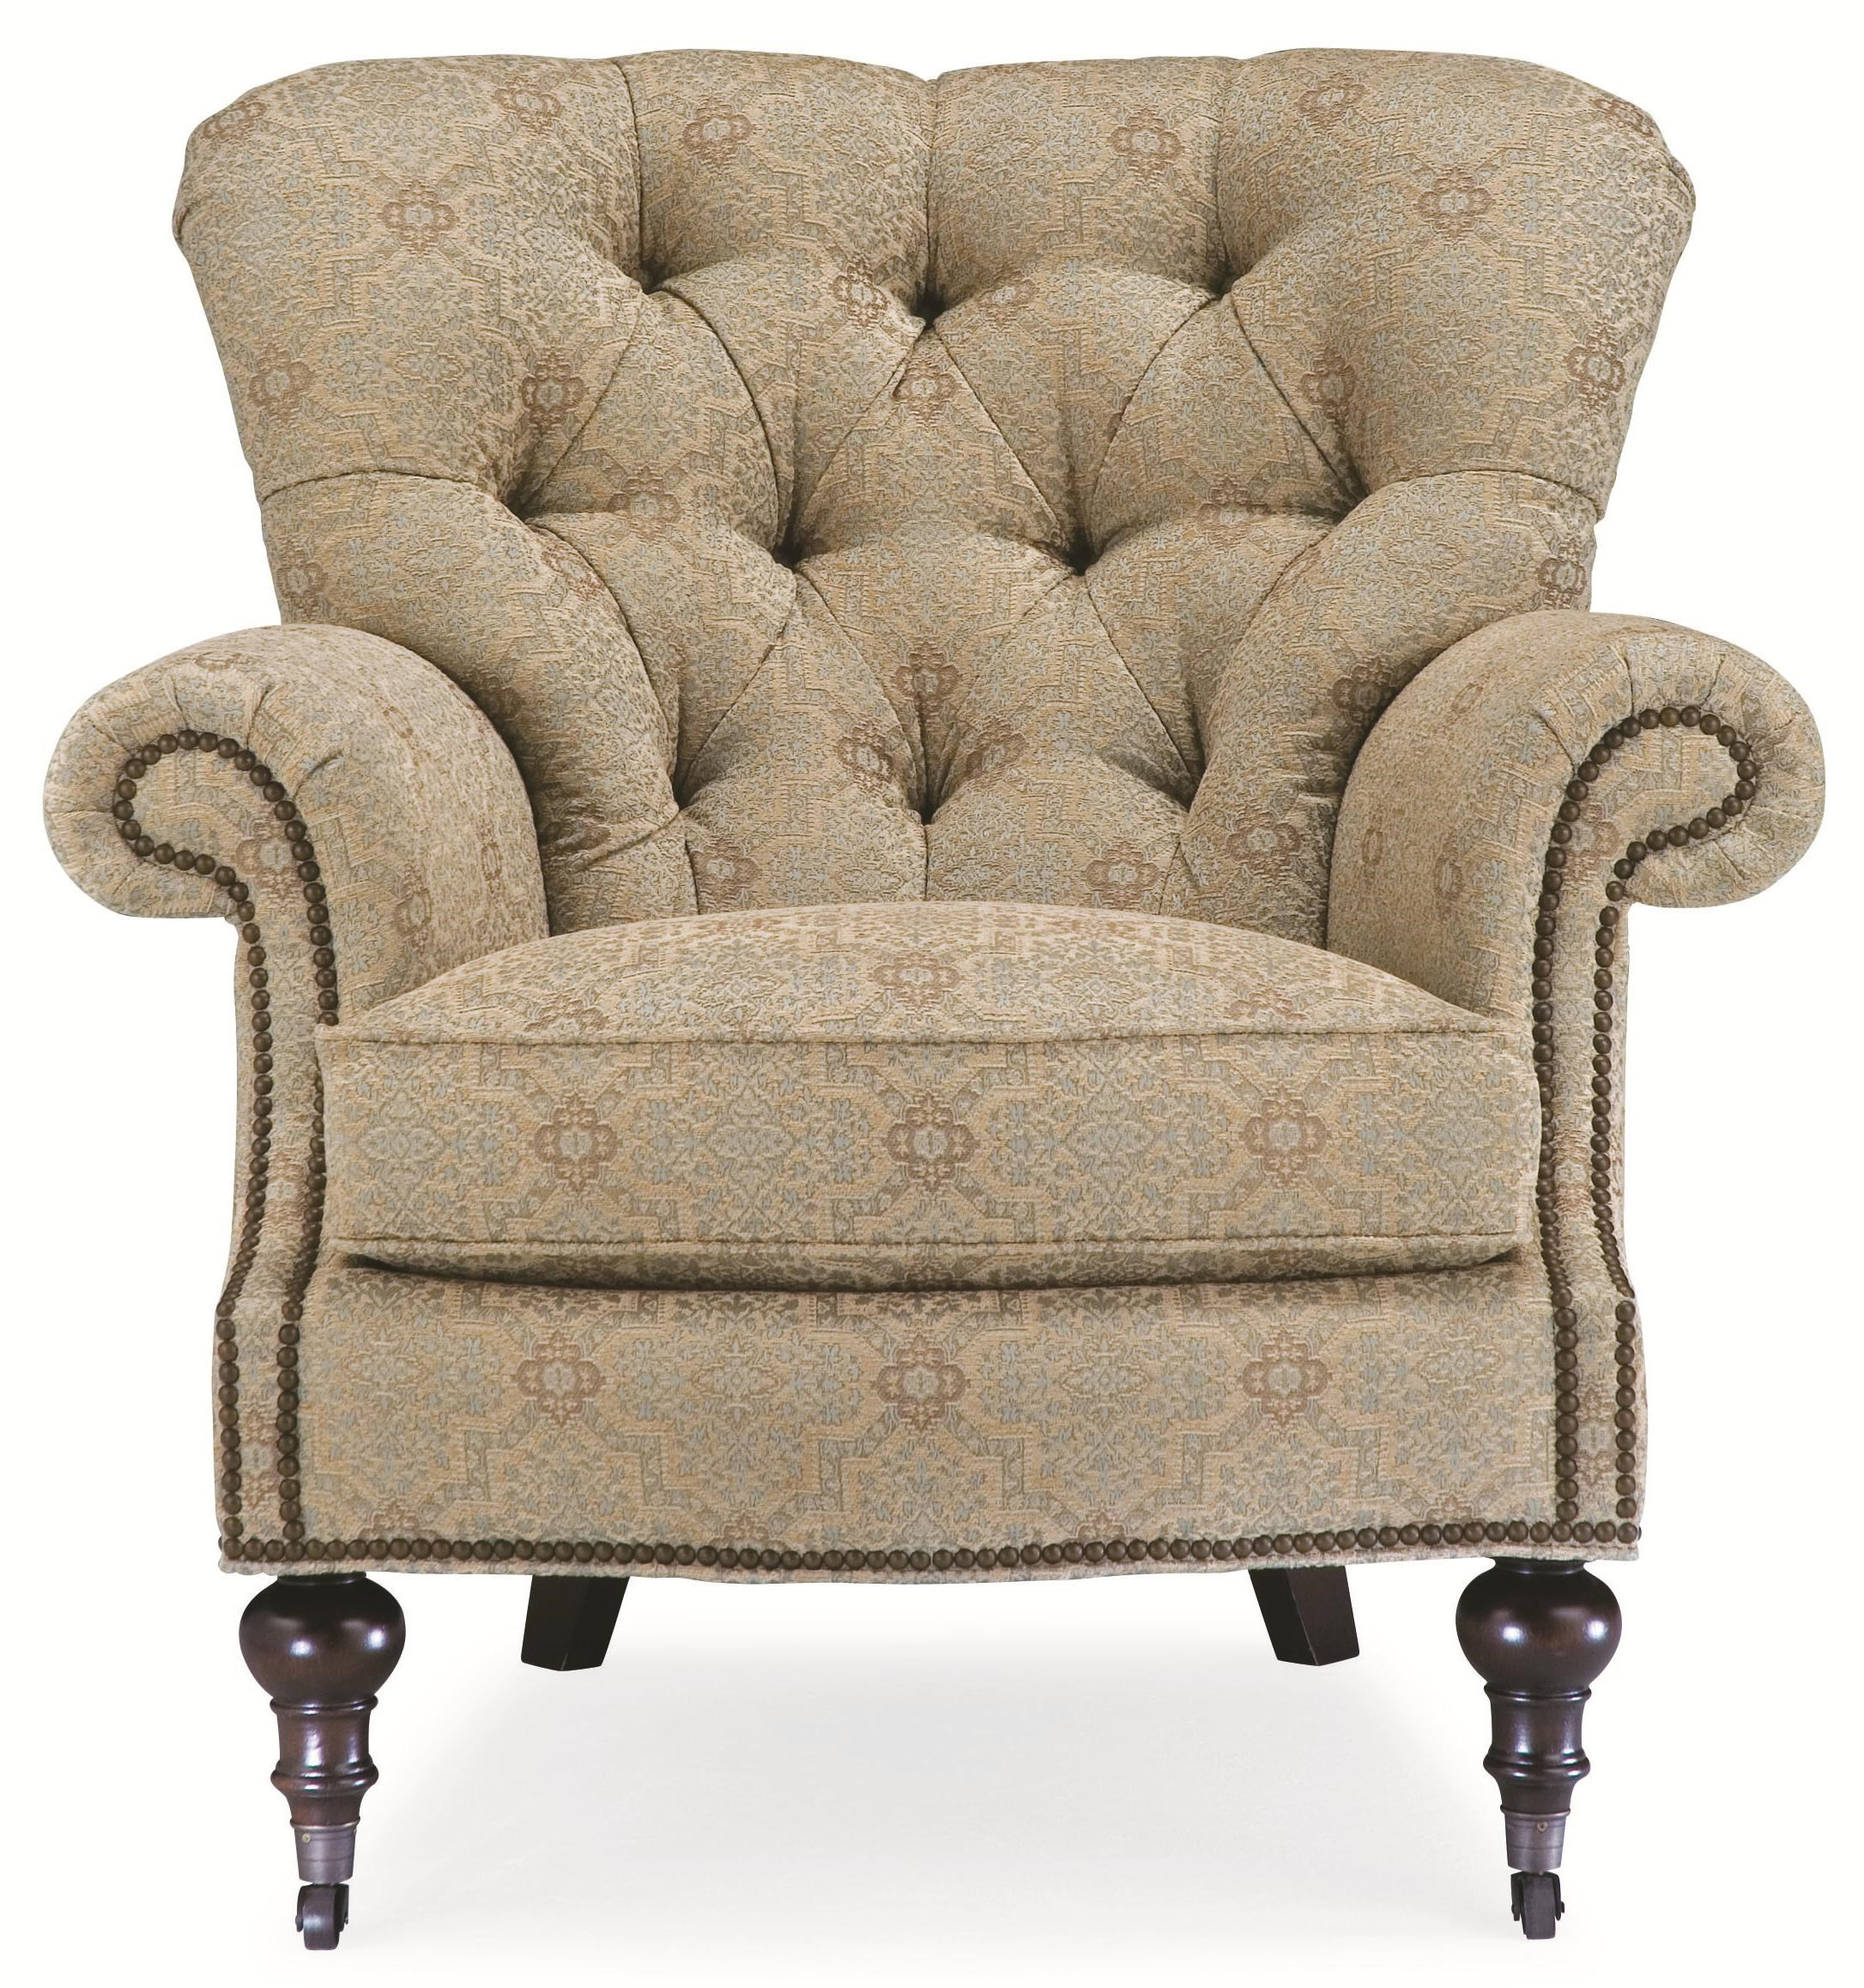 Genial ... Thomasville® Upholstered Chairs And OttomansVienna Tufted Back Chair ...